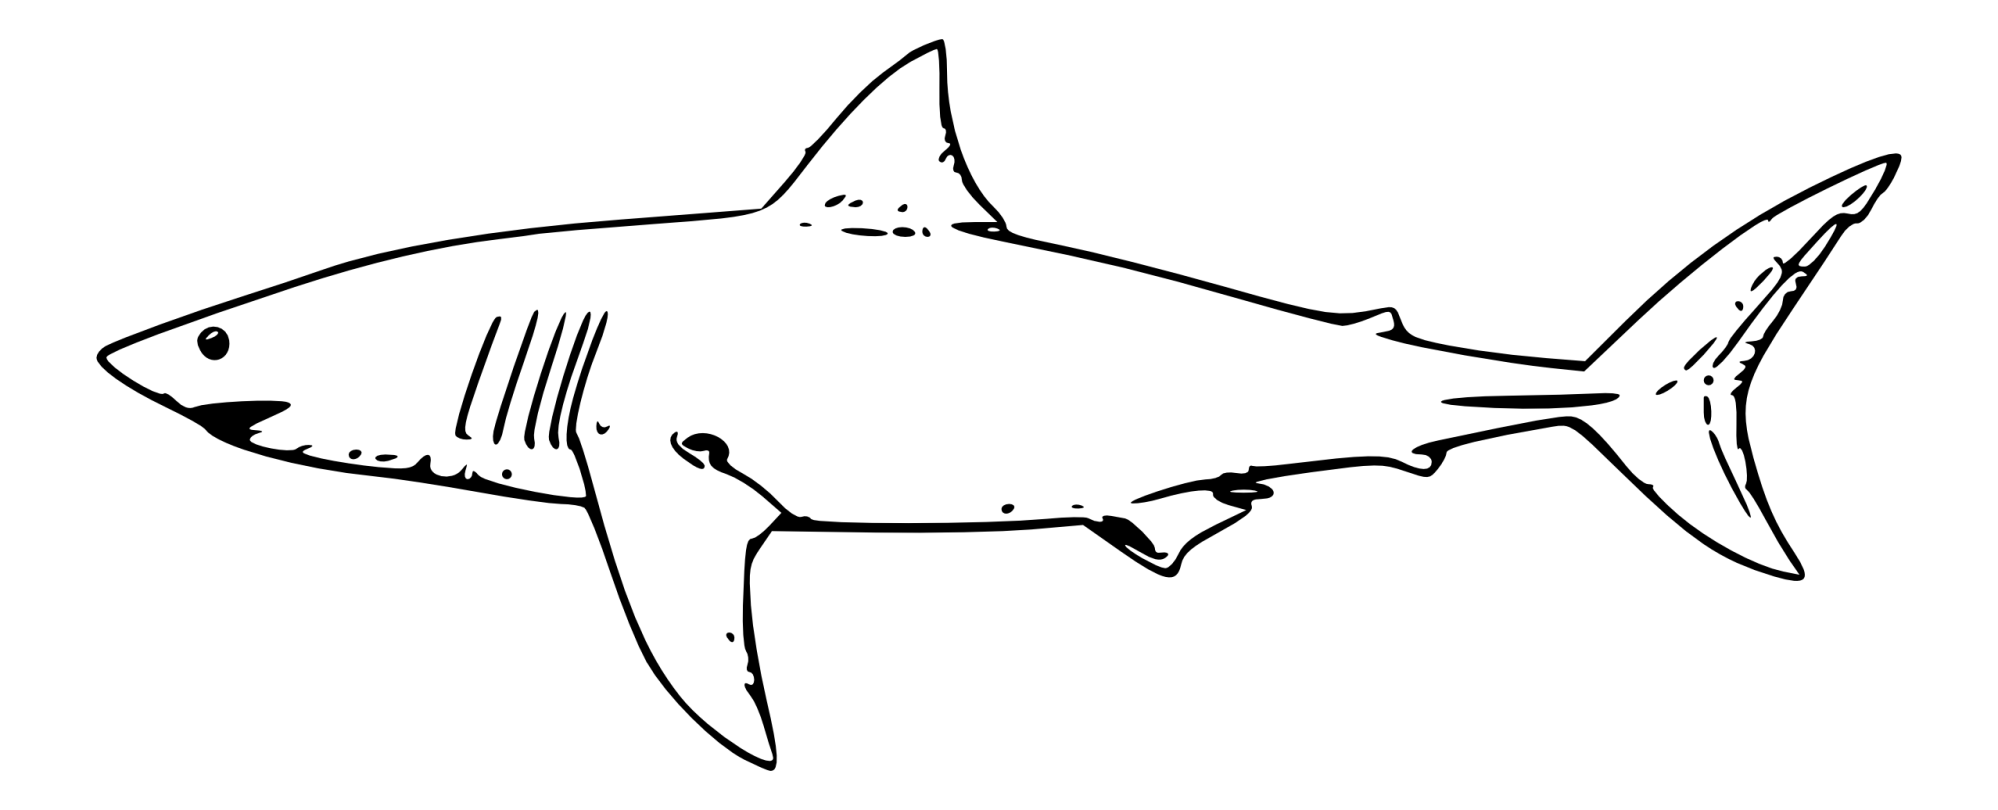 hight resolution of shark clipart black and white